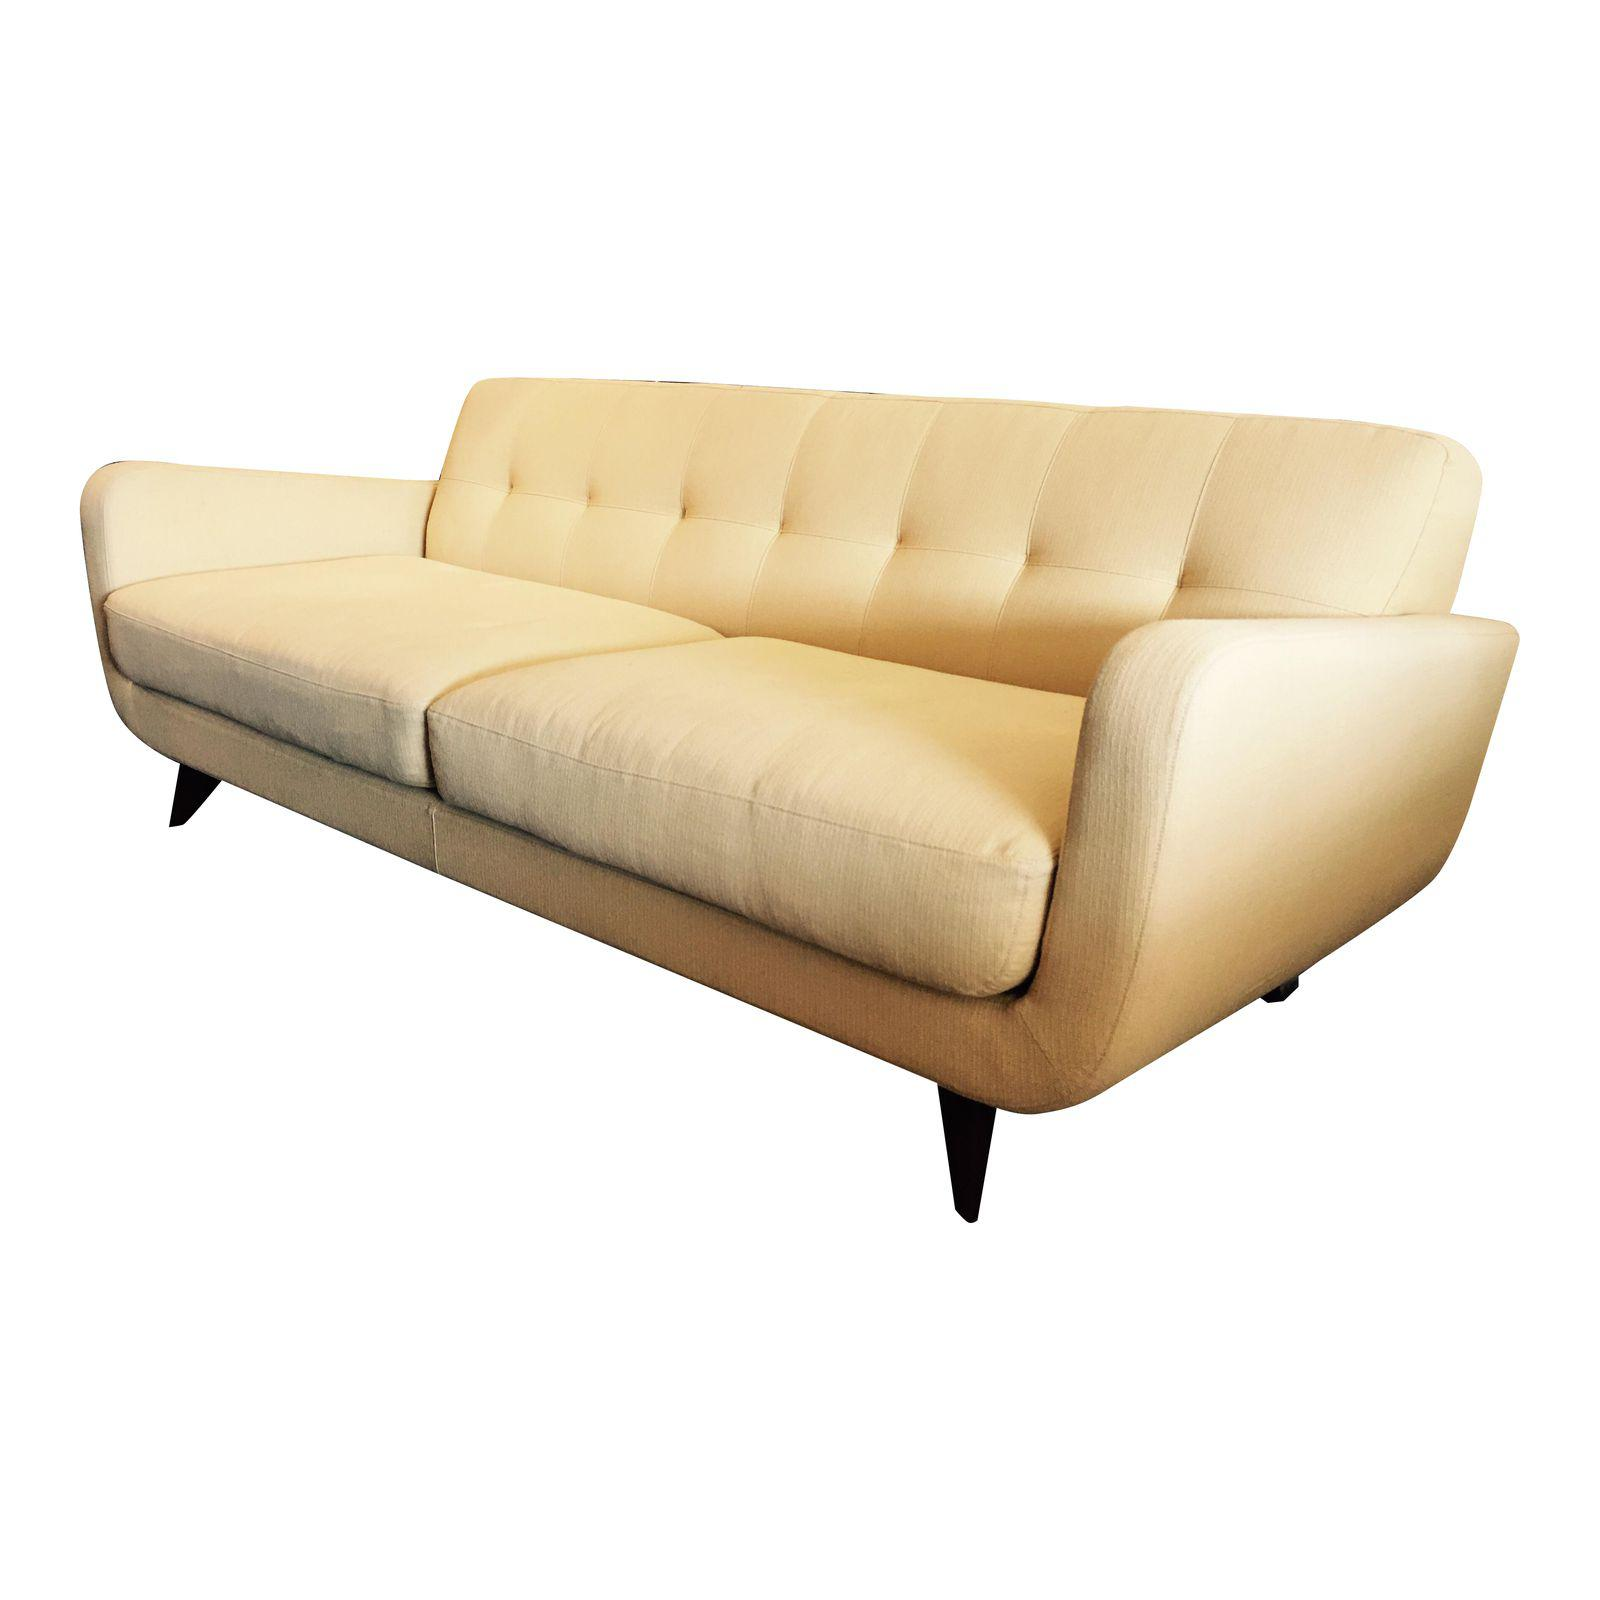 Anson Retro Modern Sofa Collection From Room U0026 Board. Retail Price:  $2,799.00   Design Plus Gallery